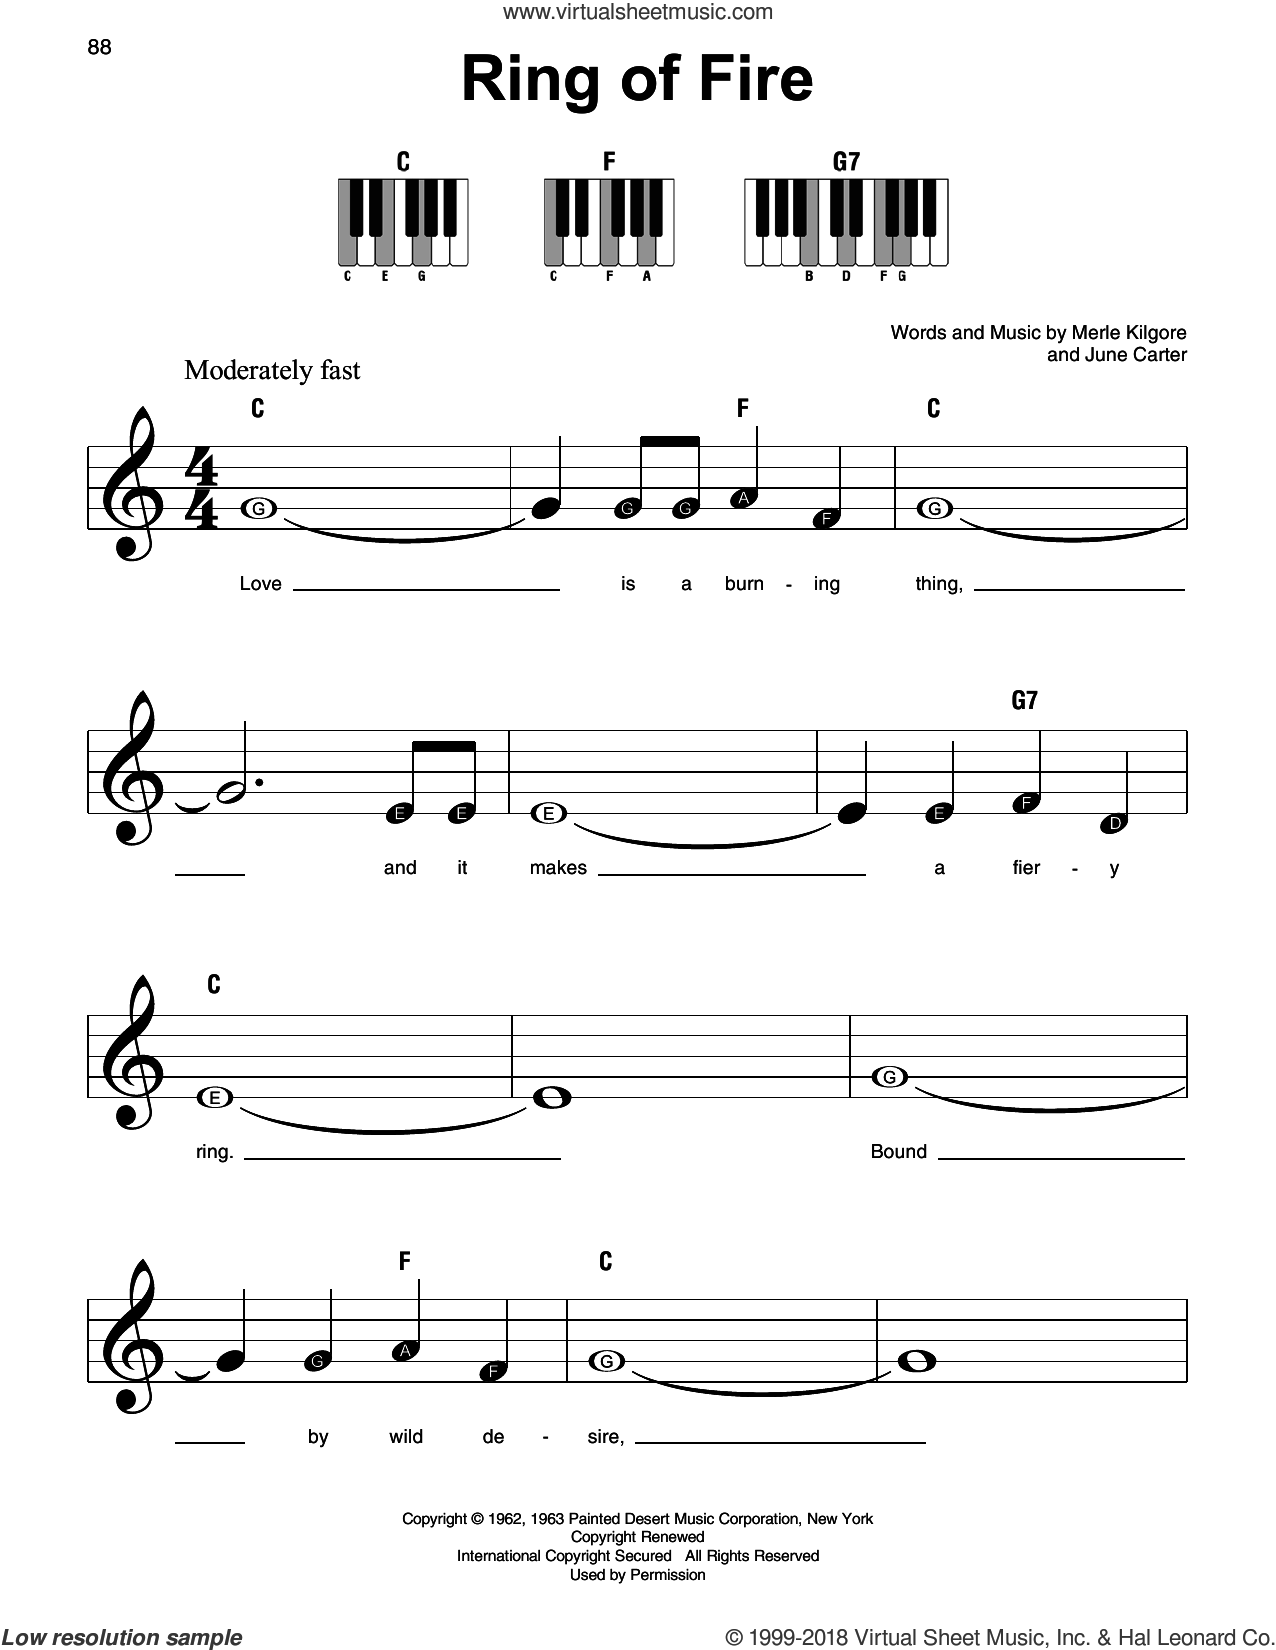 Ring Of Fire sheet music for piano solo by Johnny Cash, June Carter and Merle Kilgore, beginner skill level